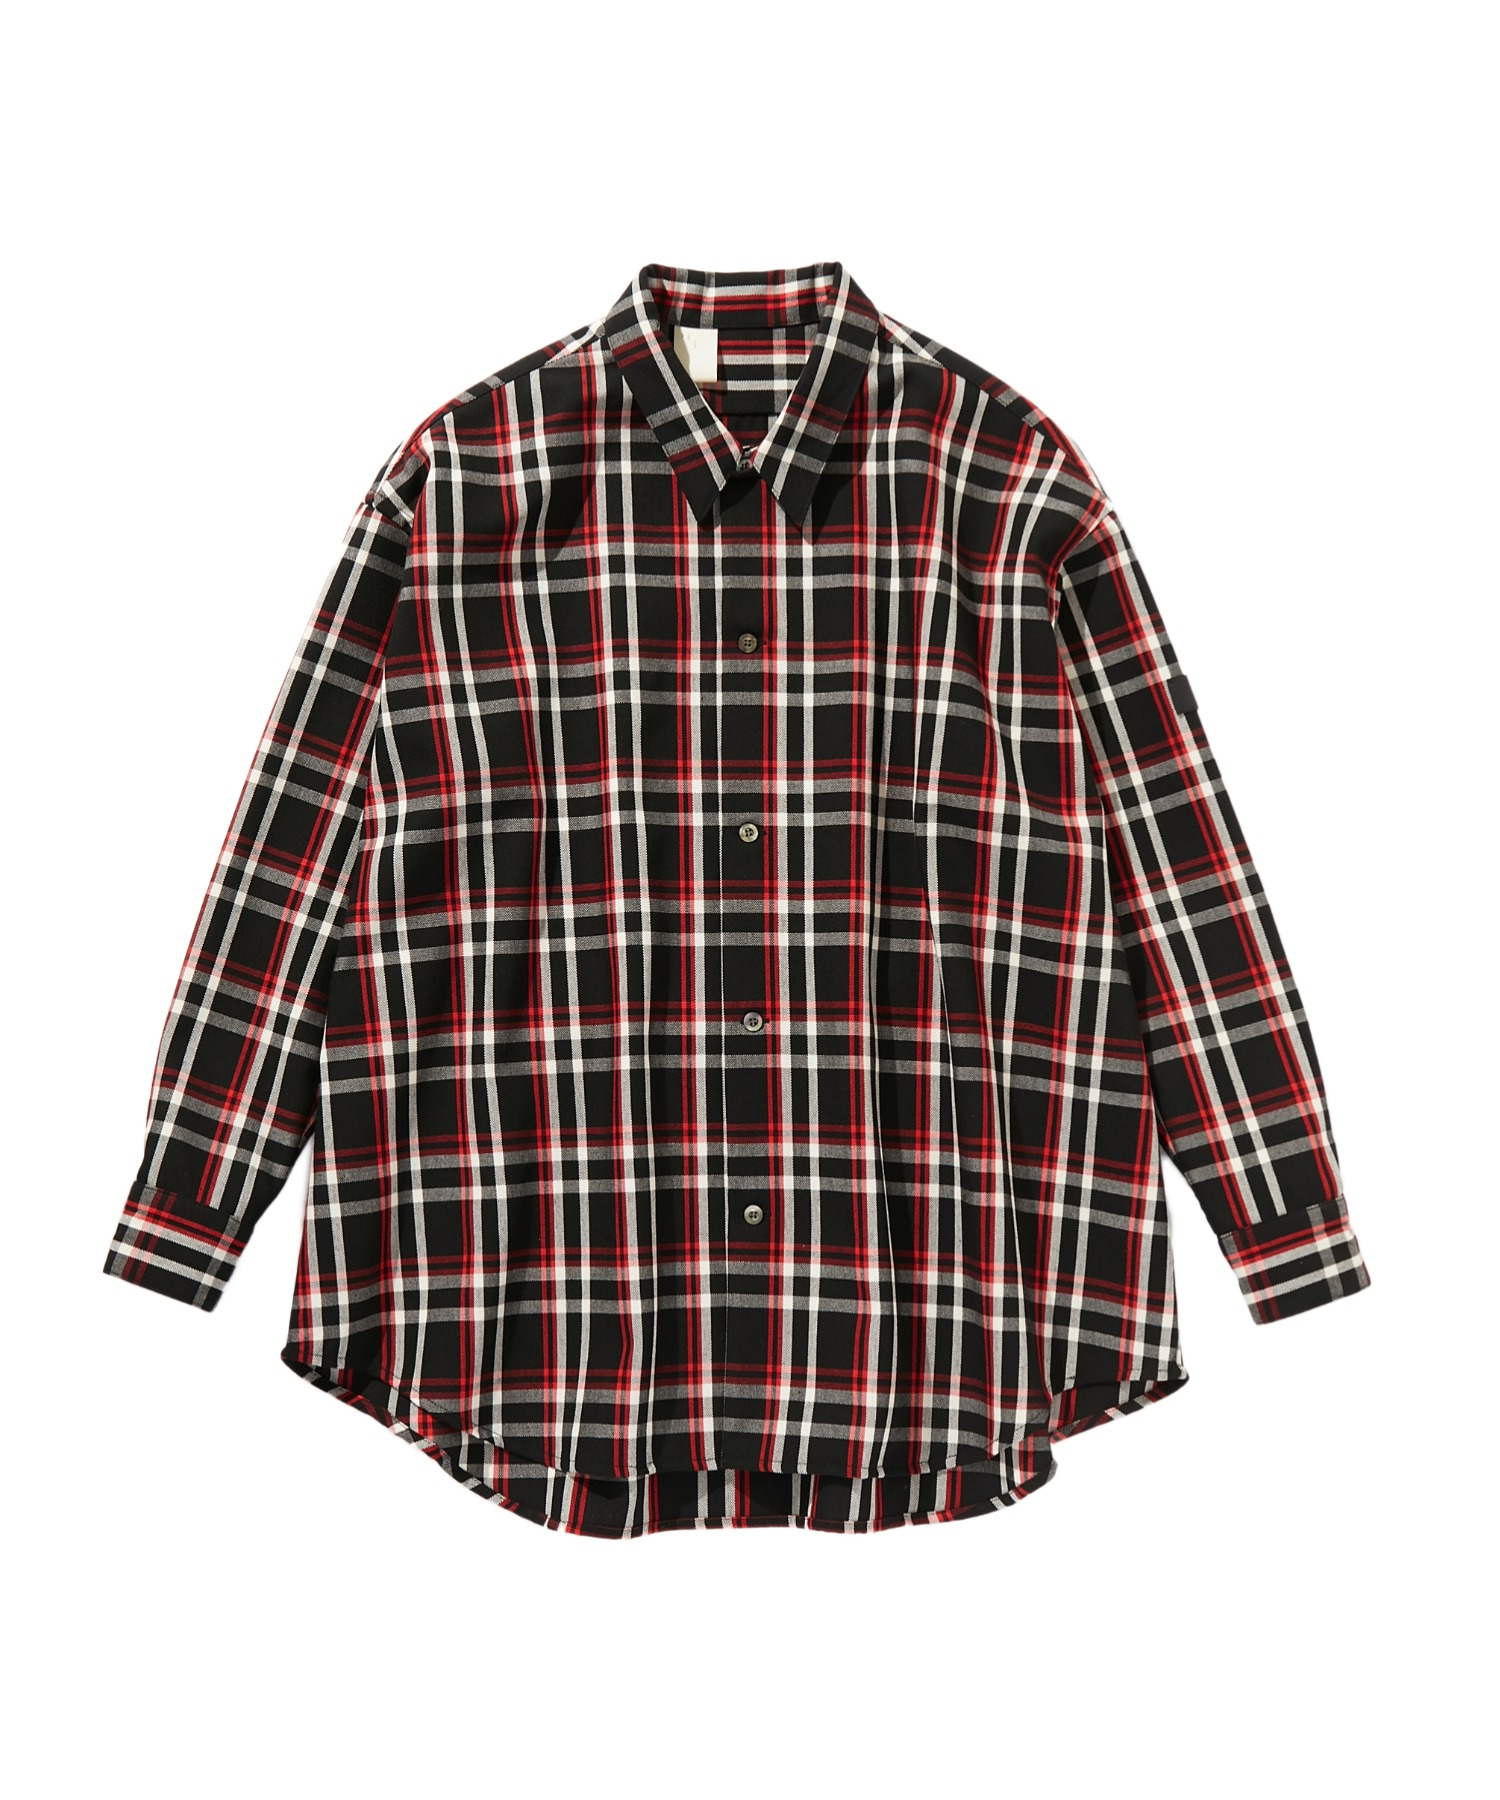 SPRING2020 BIG SHIRT 【N.HOOLYWOOD REBEL FABRIC BY UNDERCOVER】